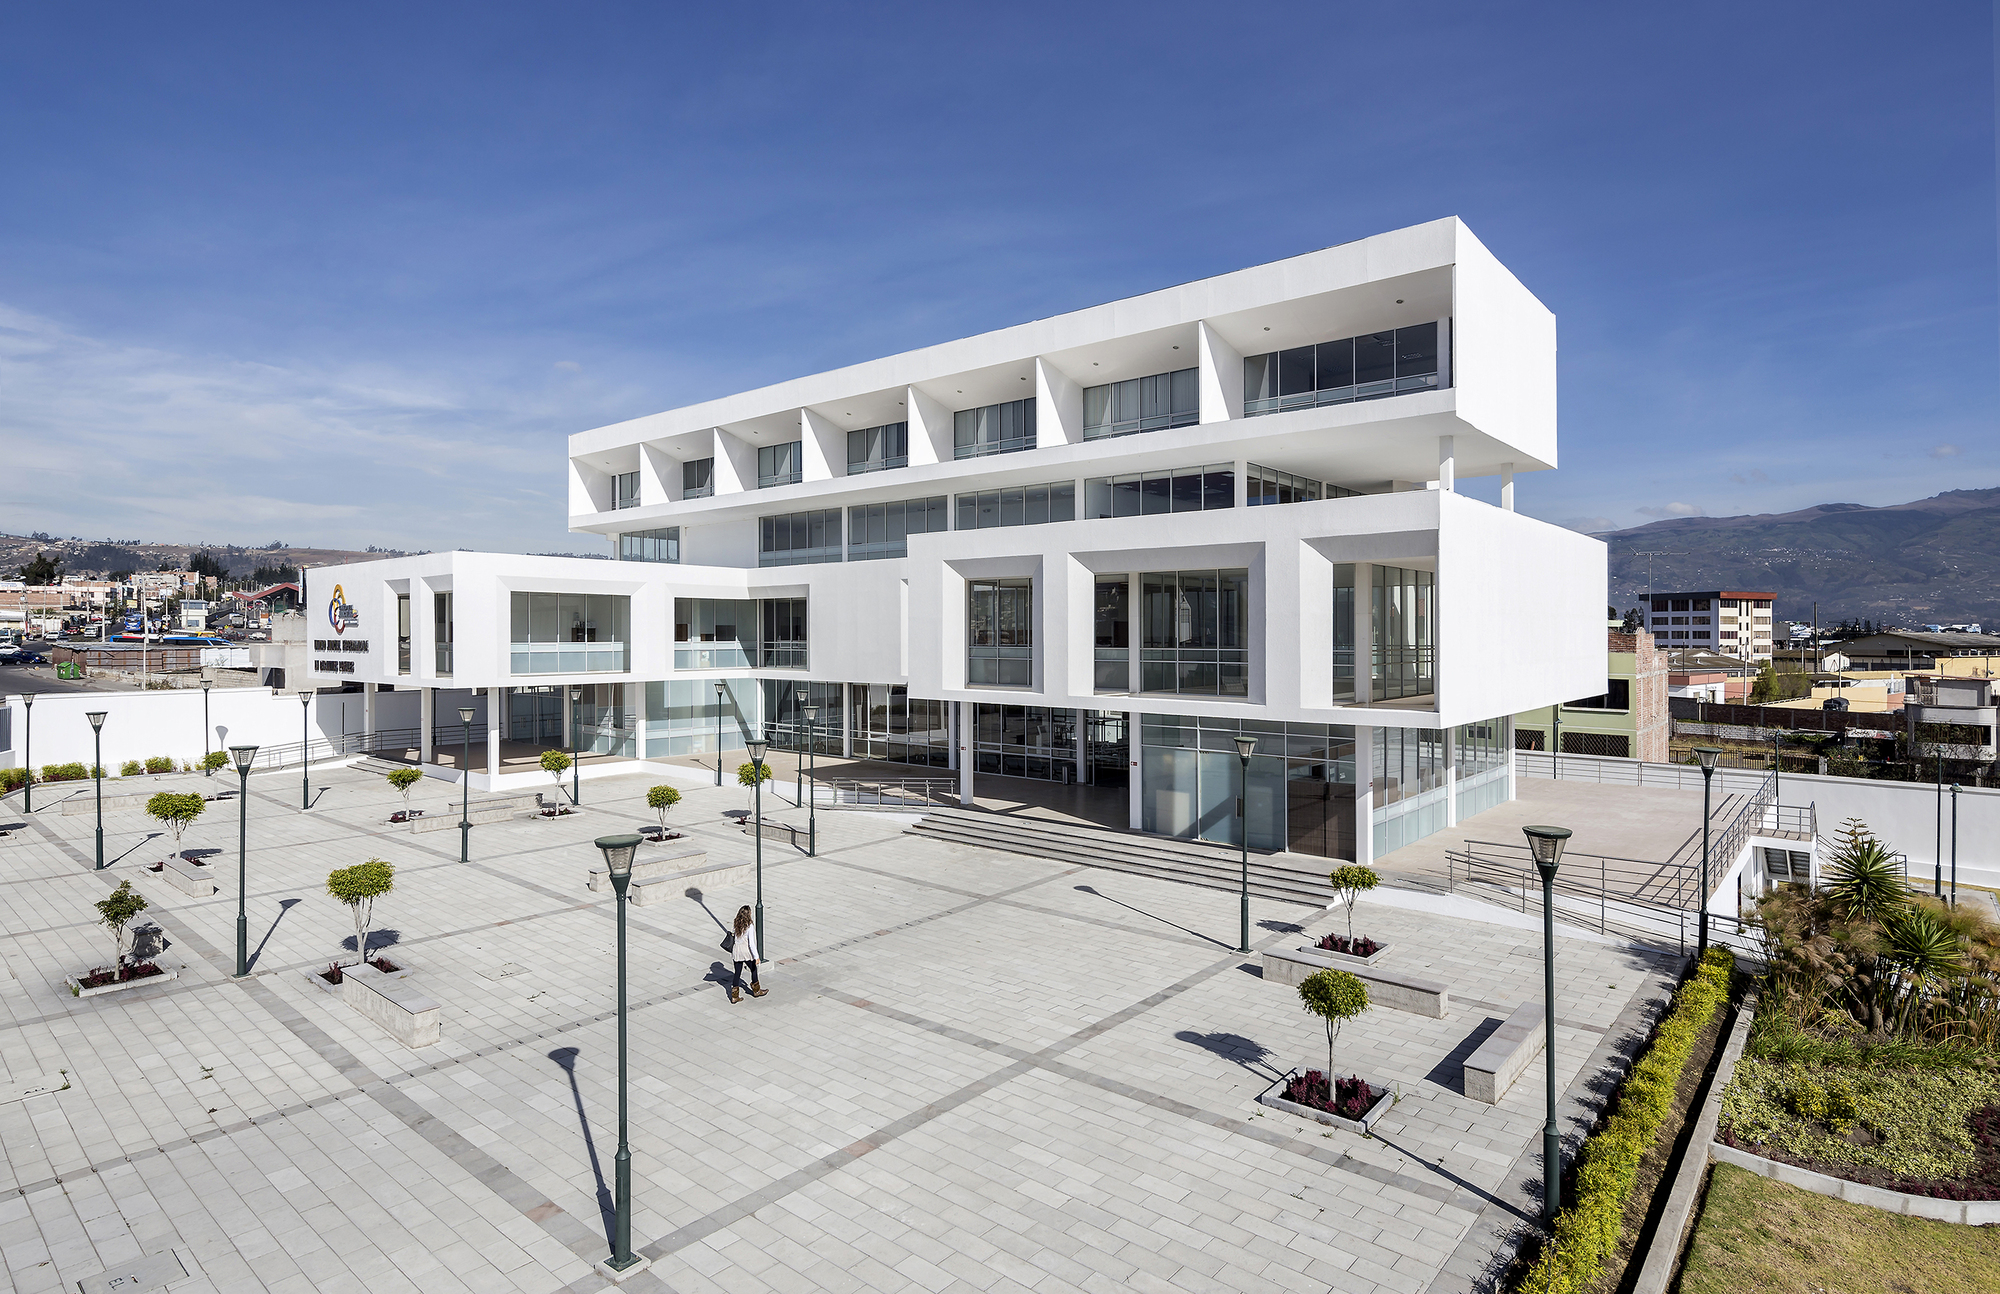 Ambato courthouse arquitectura x espinoza carvajal for Arquitectura and design